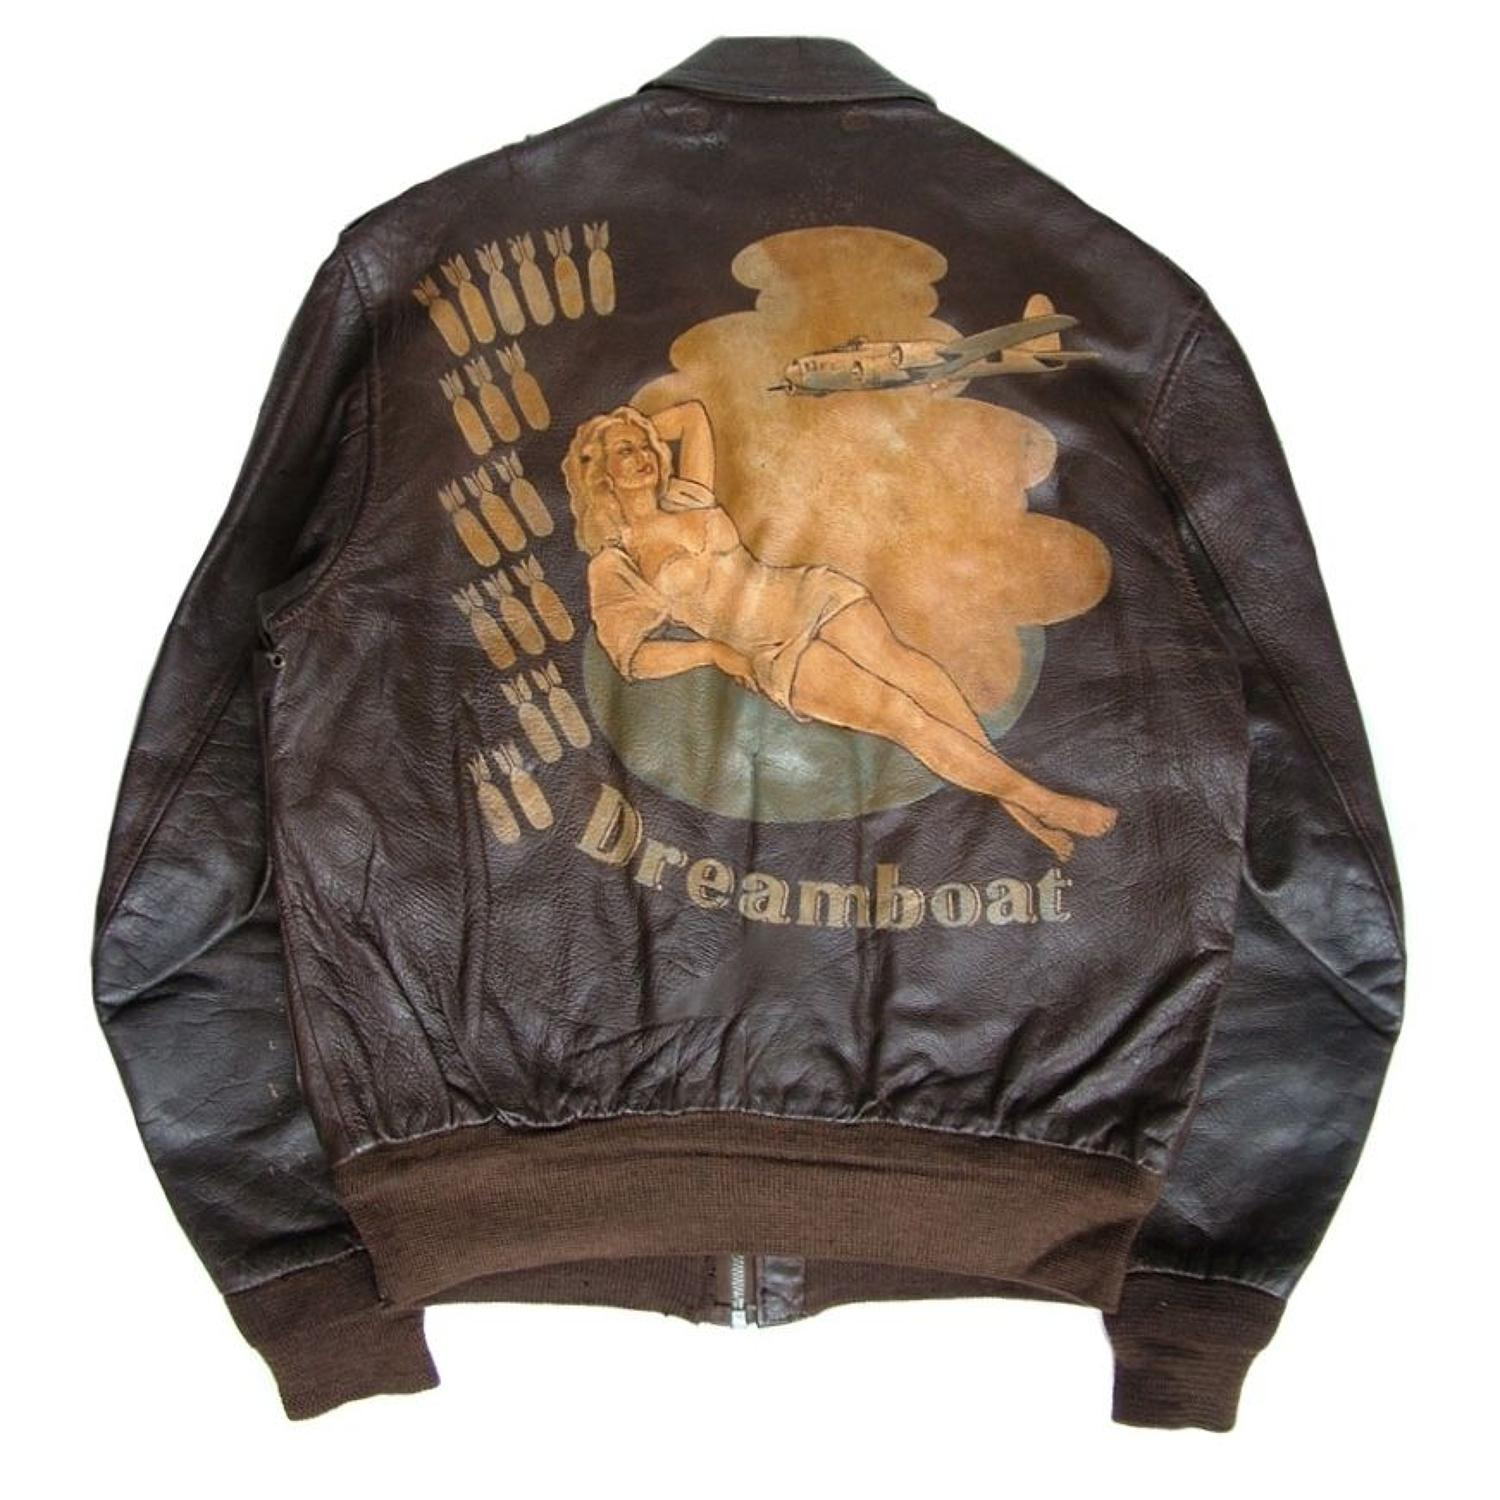 USAAF A-2 flying jacket - painted